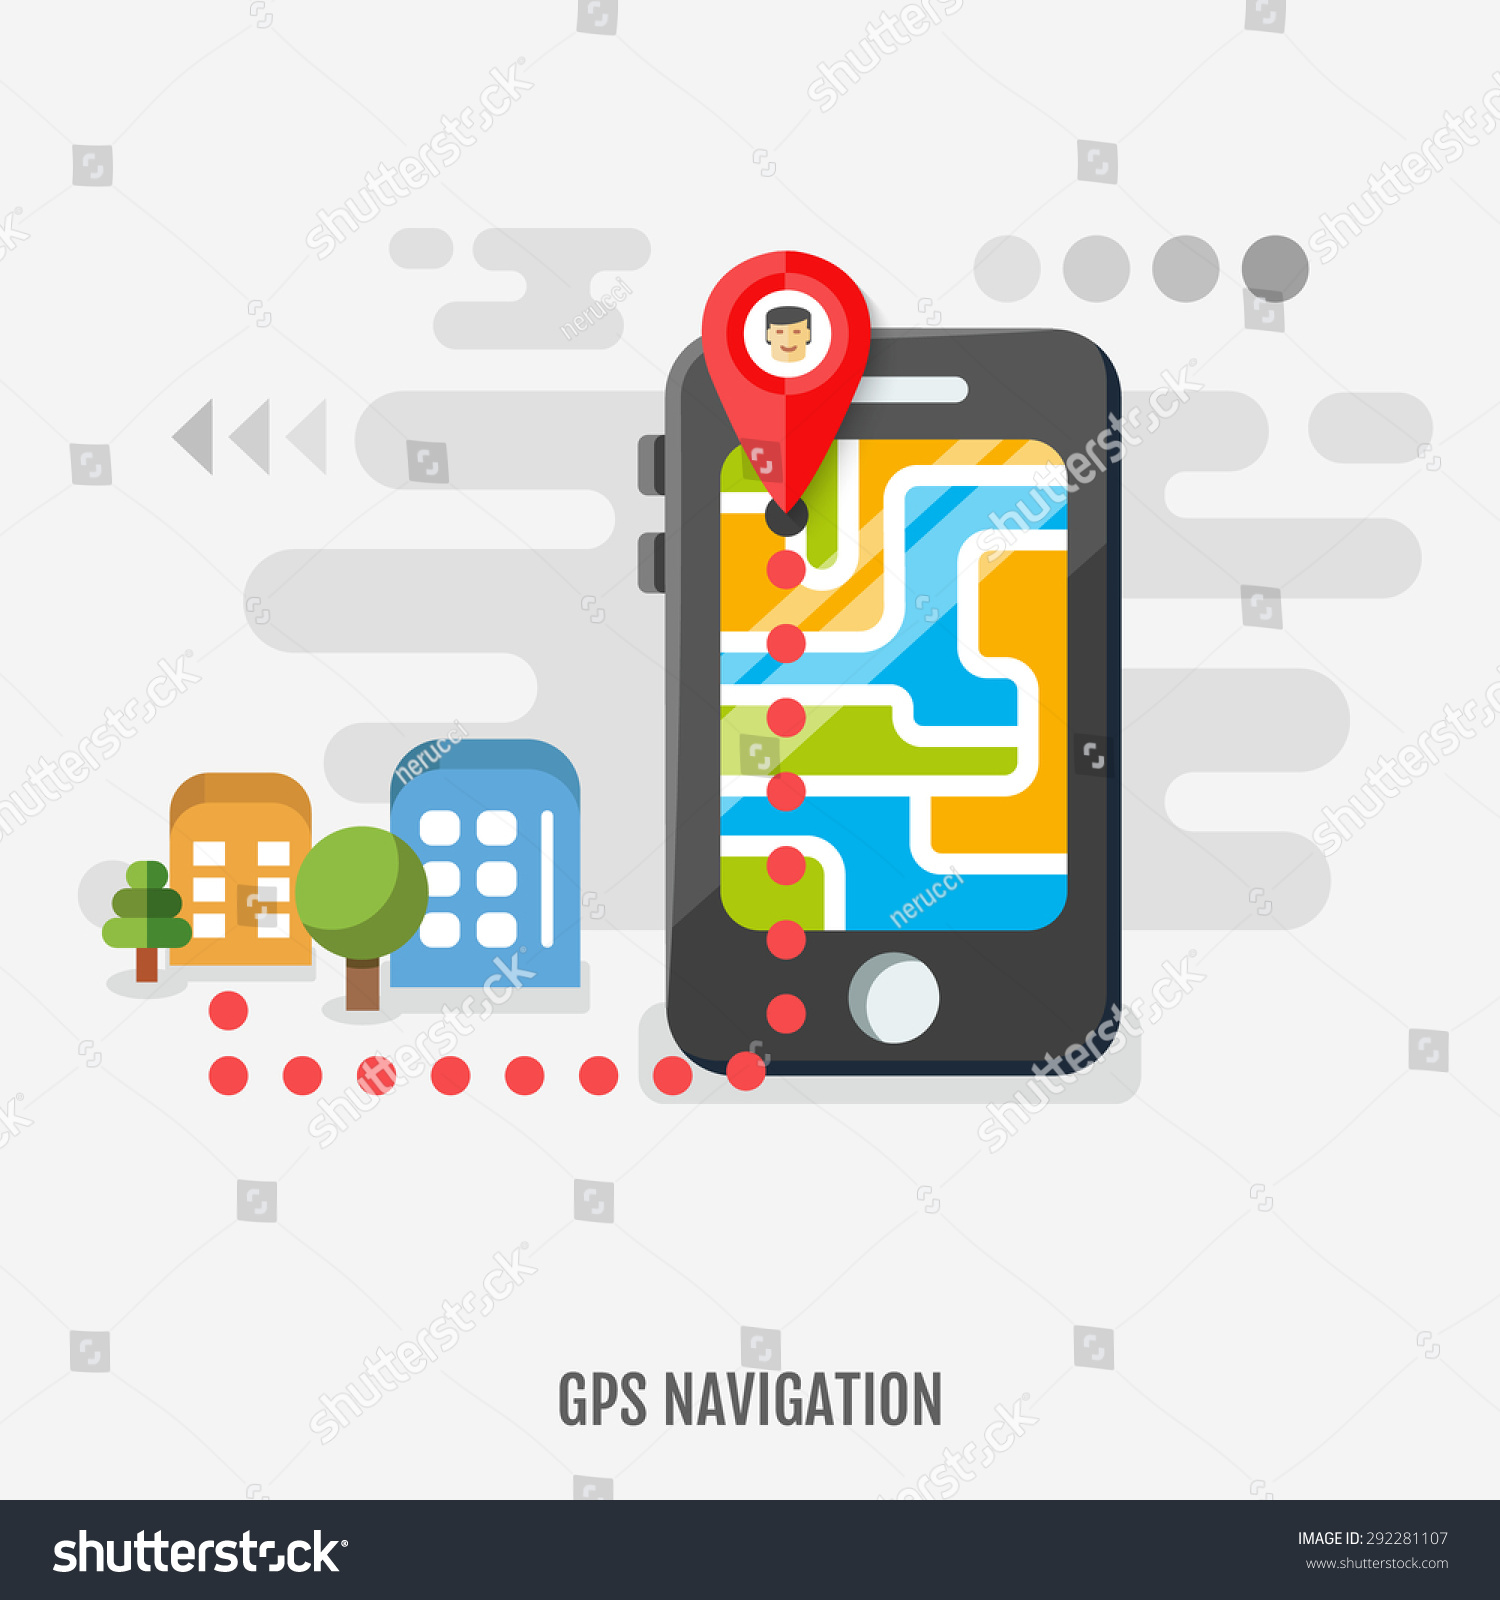 Mobile Gps Navigation On Mobile Phone Stock Vector Royalty Free